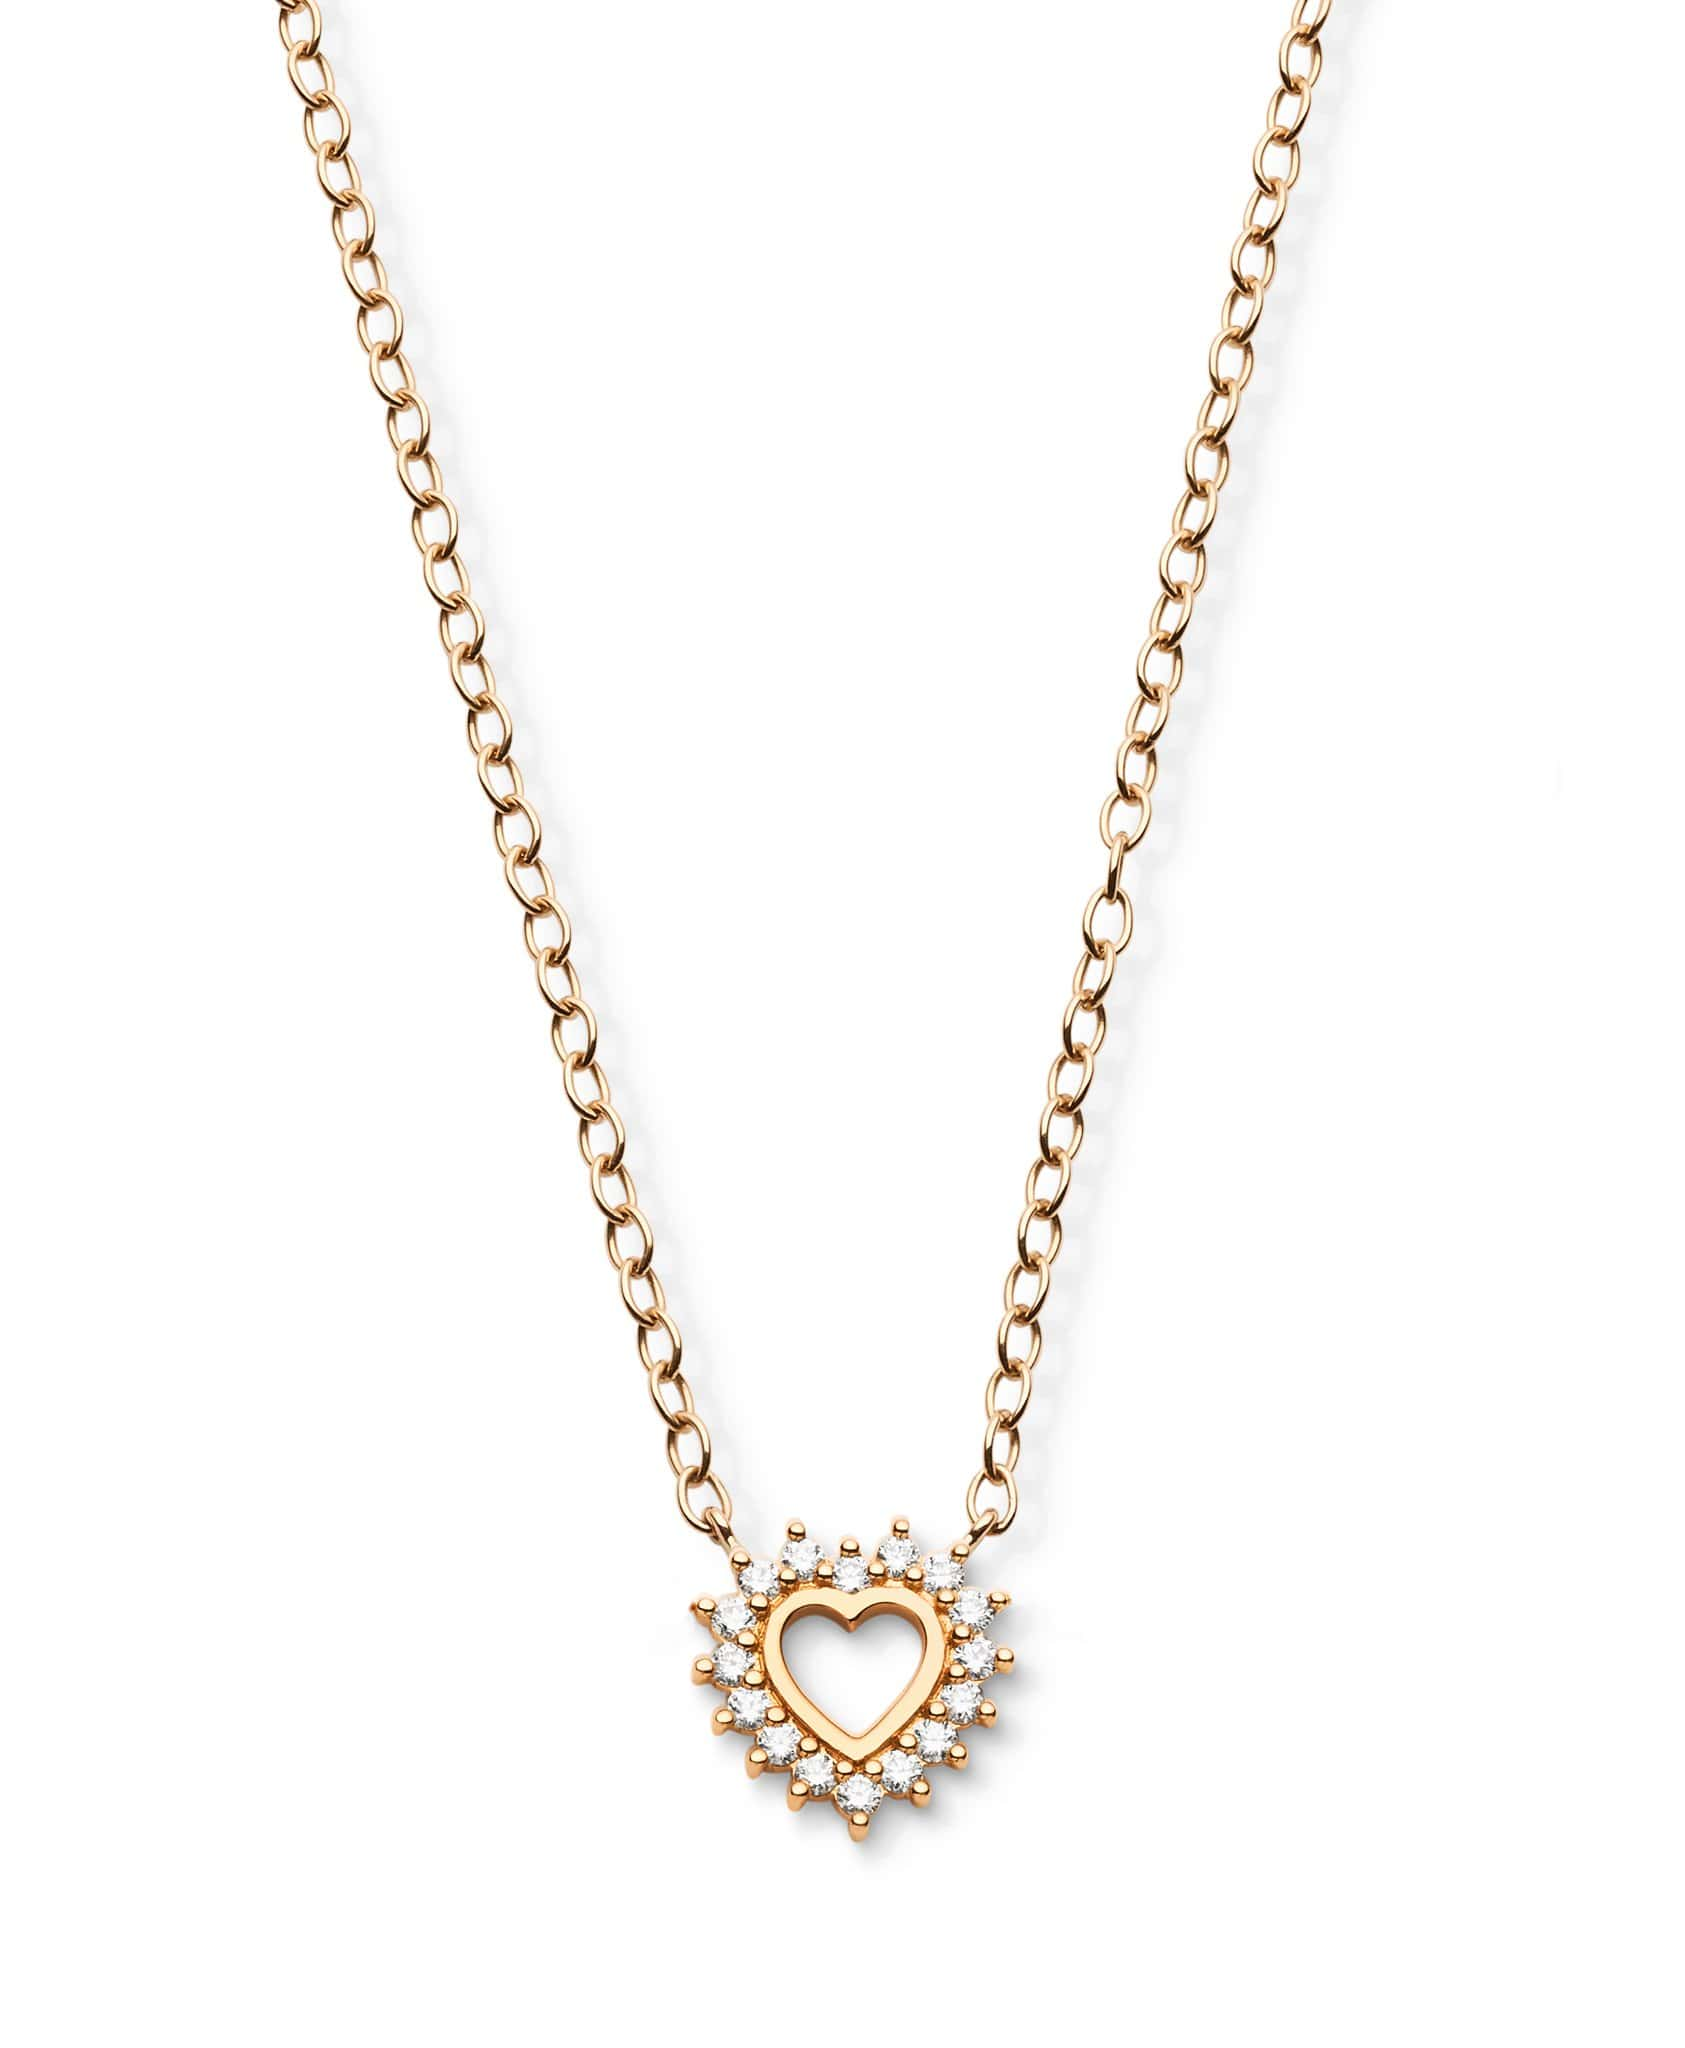 Medium Love Pendant: Discover Luxury Fine Jewelry | Nouvel Heritage